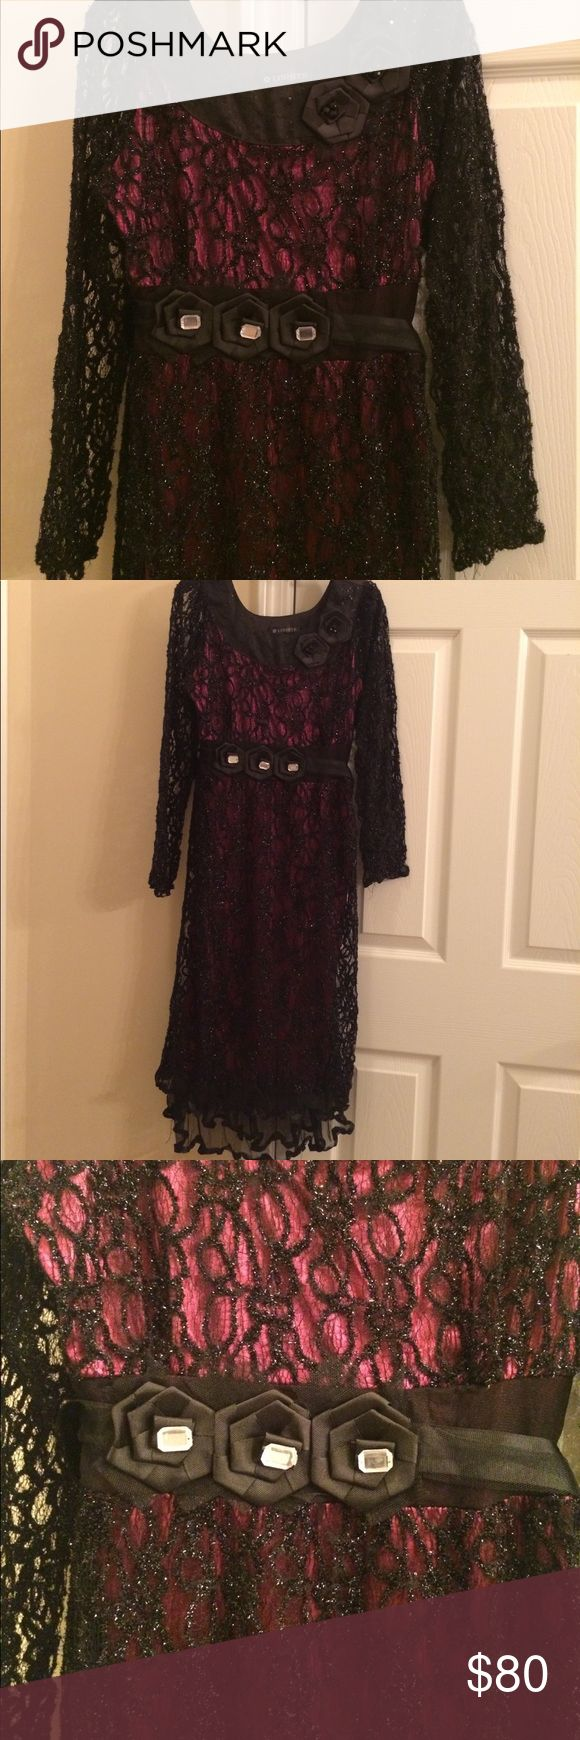 Juniors dress A very beautiful evening dress for junior girls or women in small size. It is used very gently and still in perfect condition. Black shiny net with magenta lining and double frill at the bottom give it perfect party look. Dresses